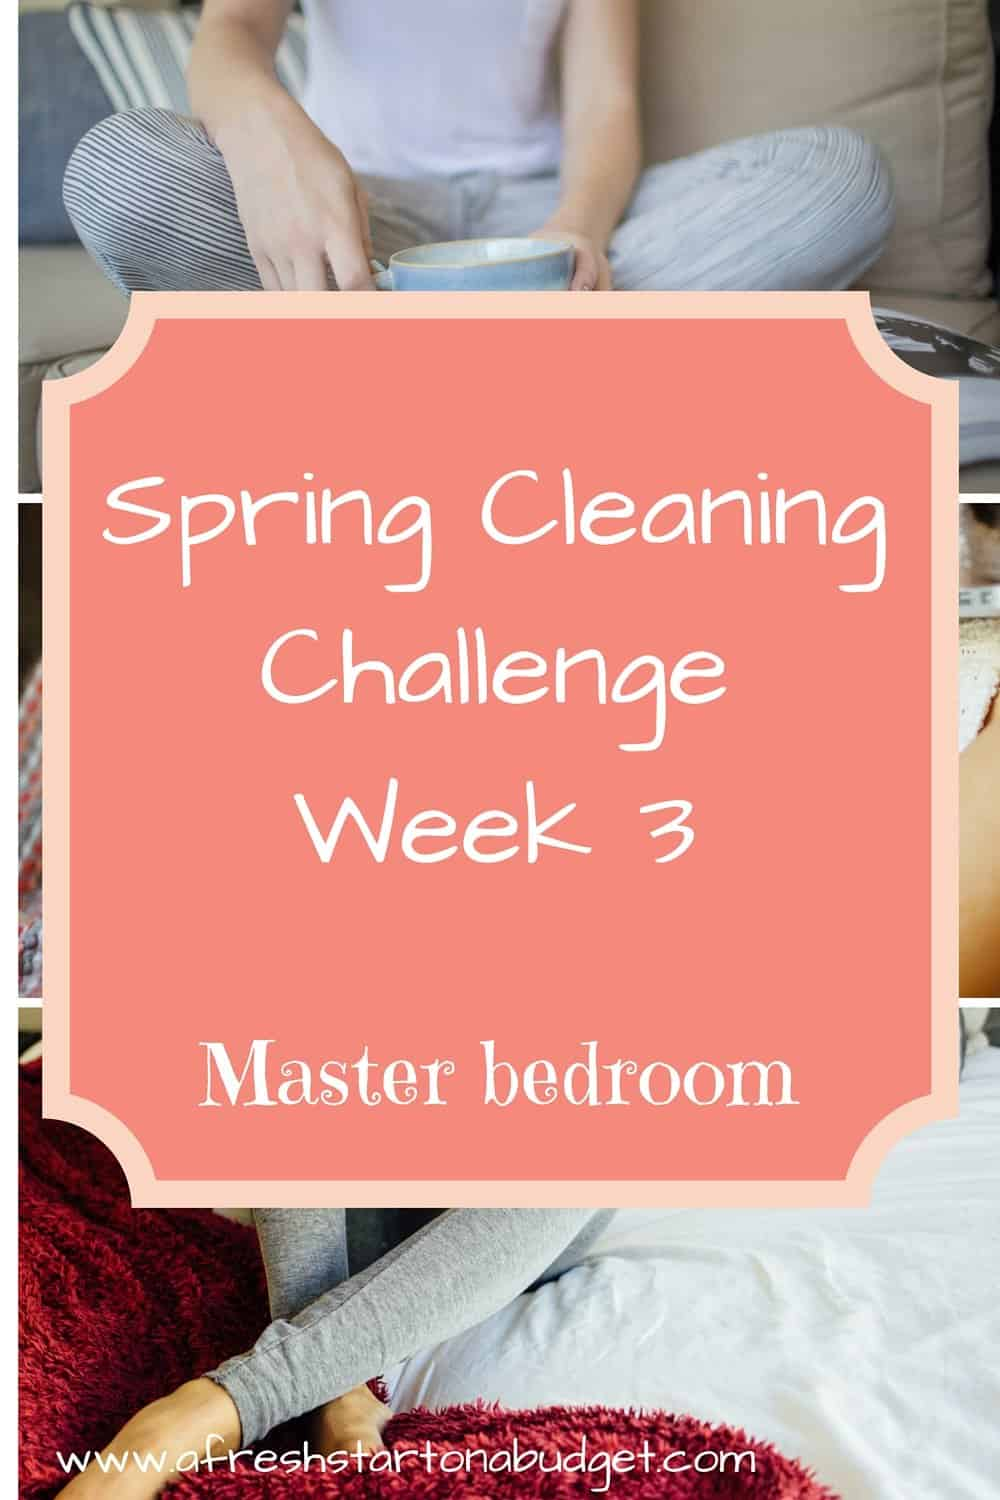 Spring Cleaning series Week 3: Master Bedroom